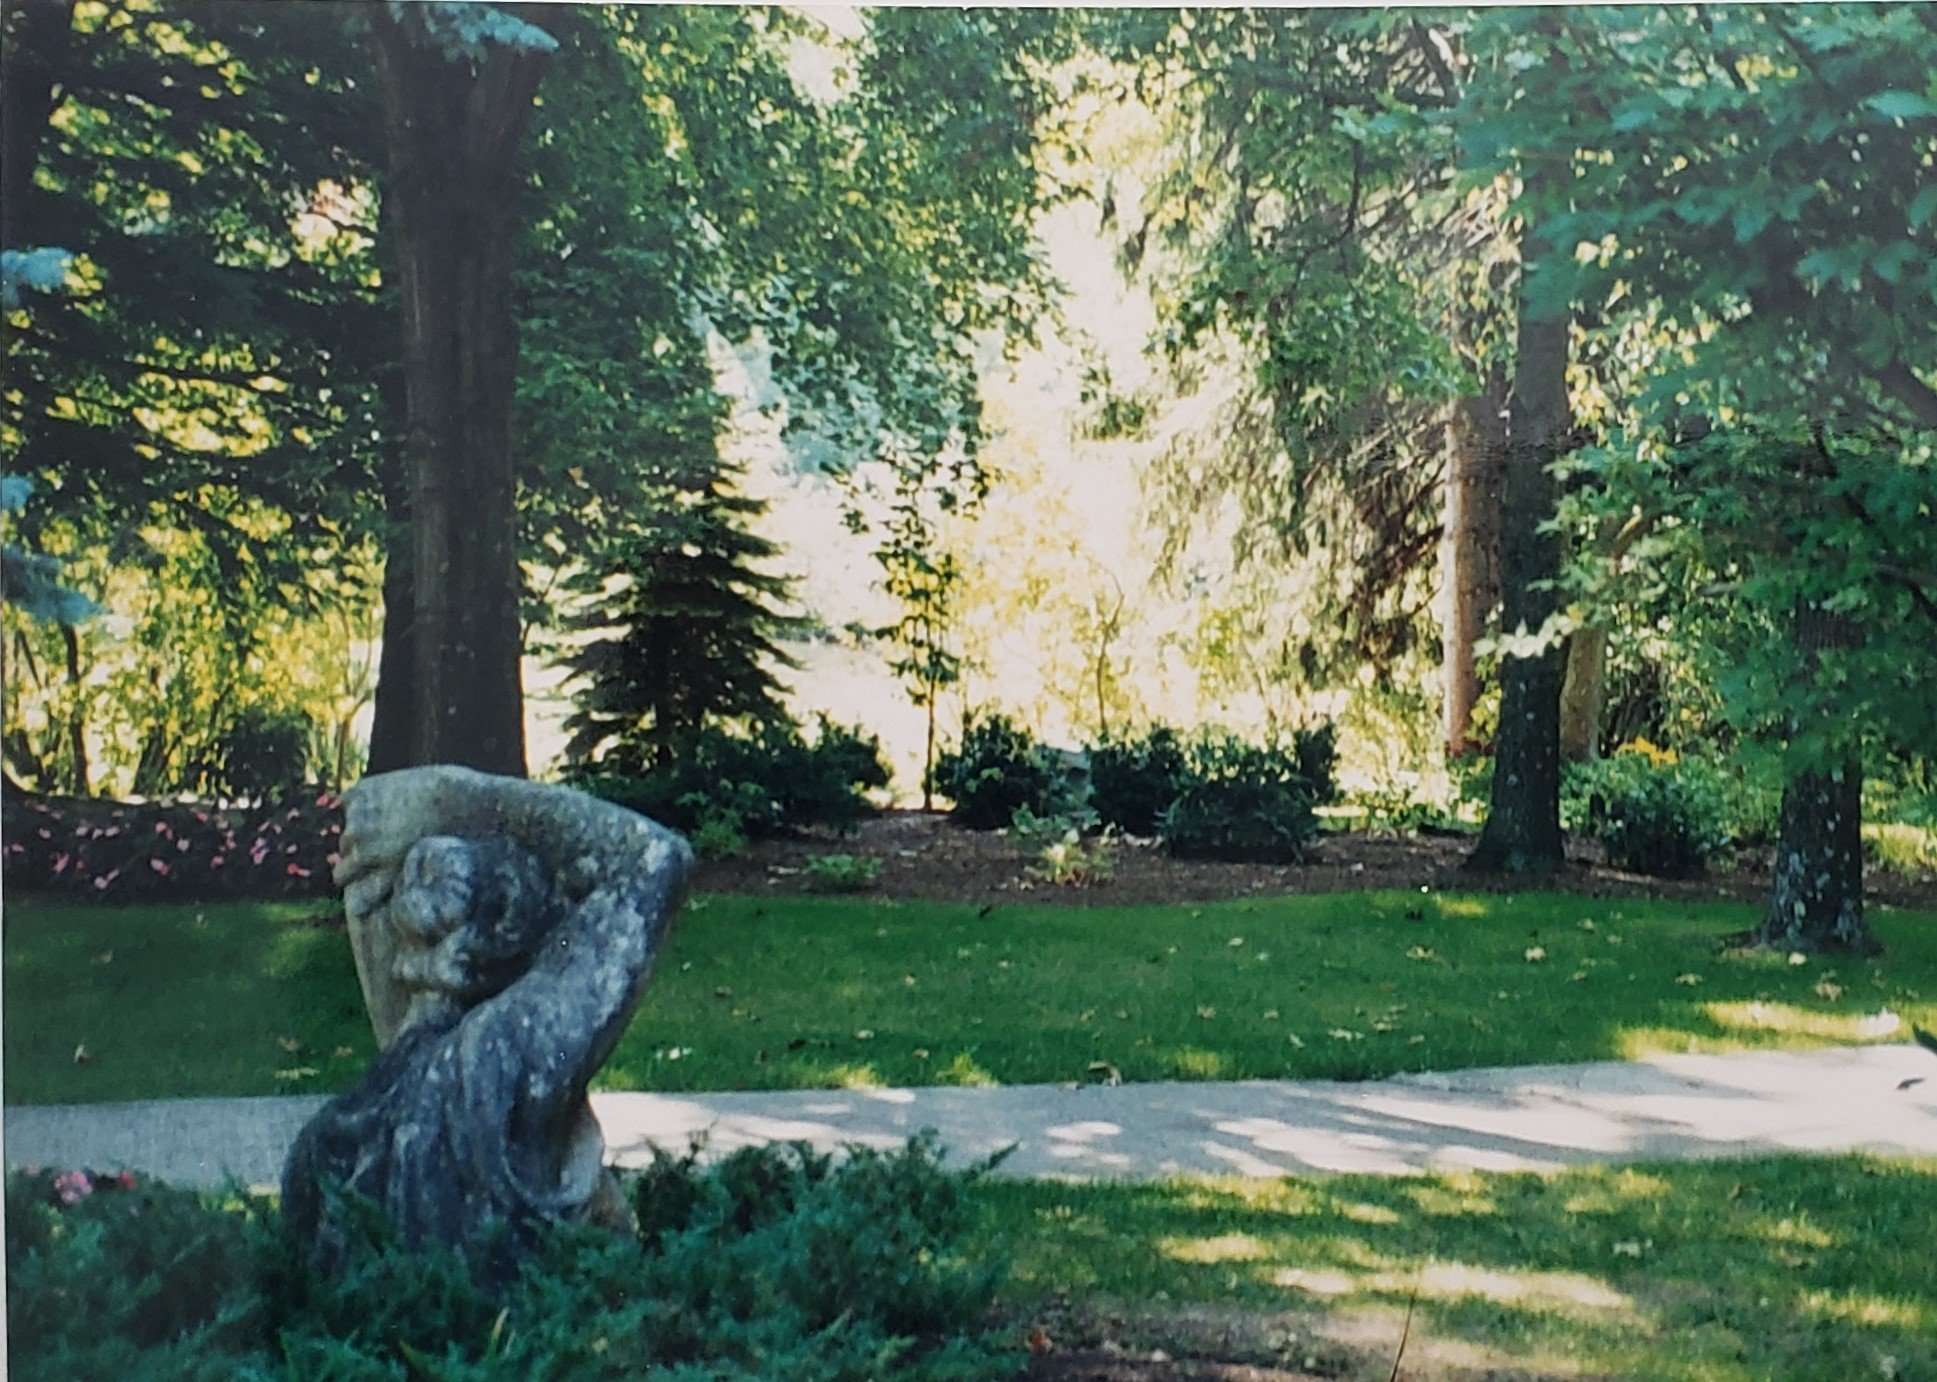 There are numerous sculptures that Stoughton collected throughout the grounds at Green Gables.